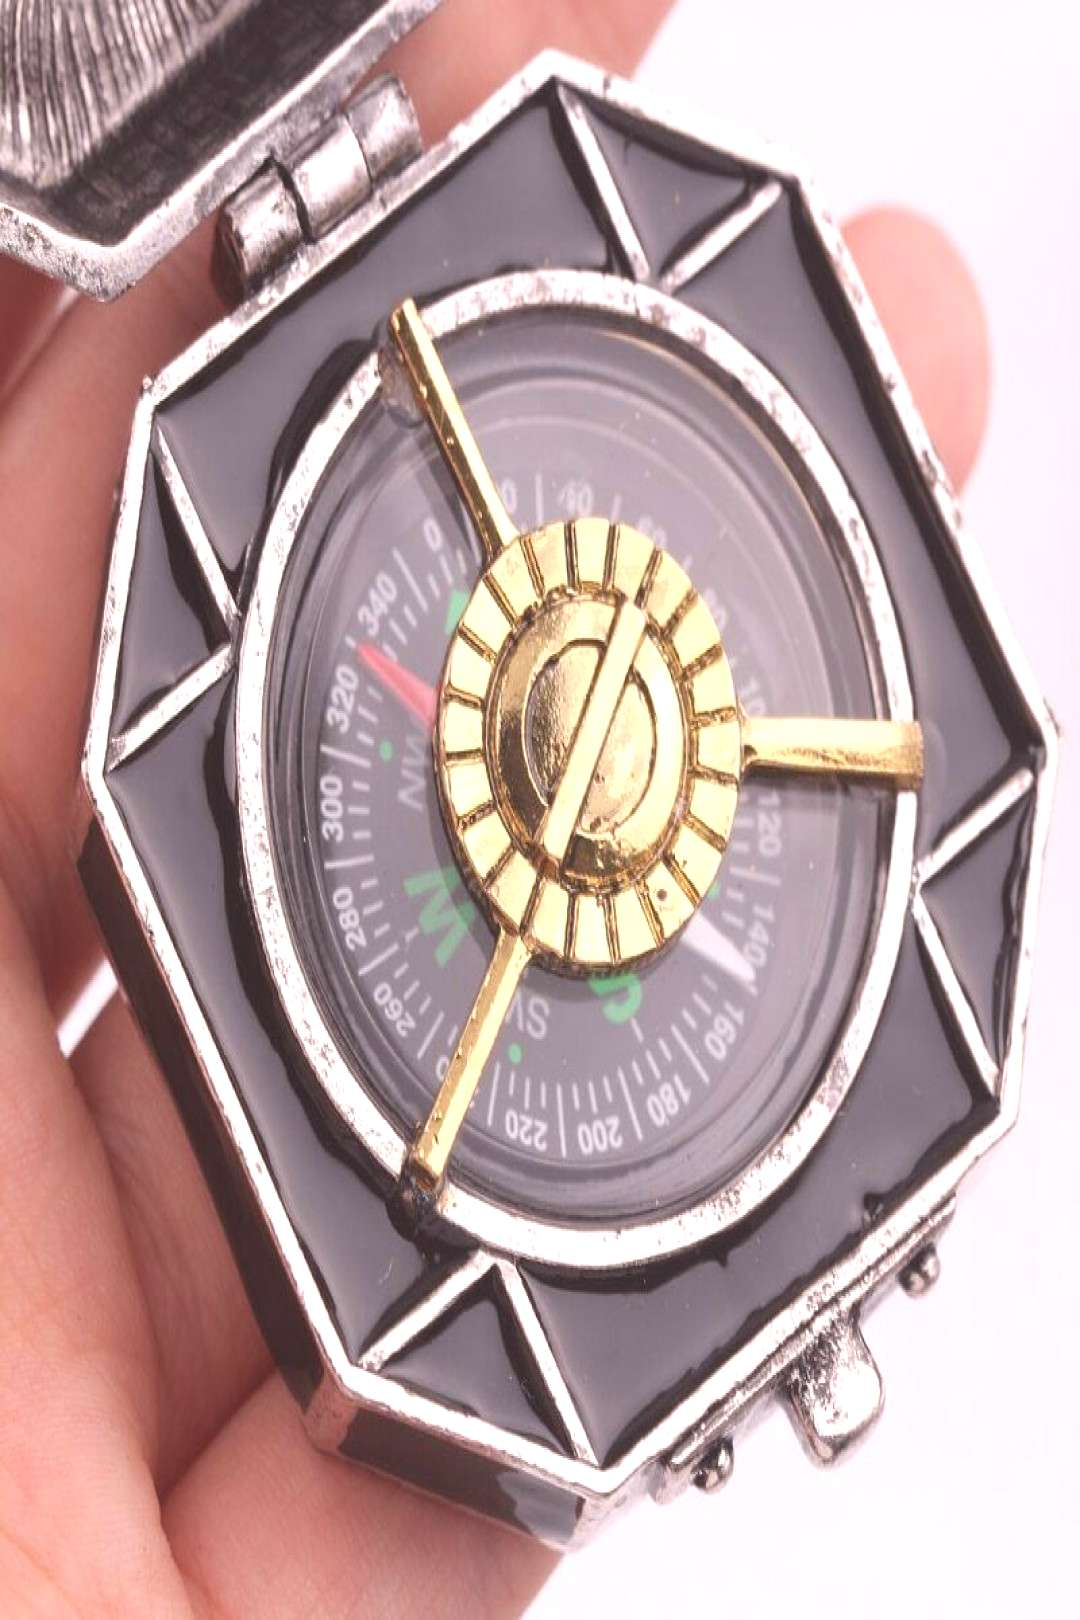 Pirates of the Caribbean Compass Jack Sparrow functioning Cosplay Pirates Caribbean x ,